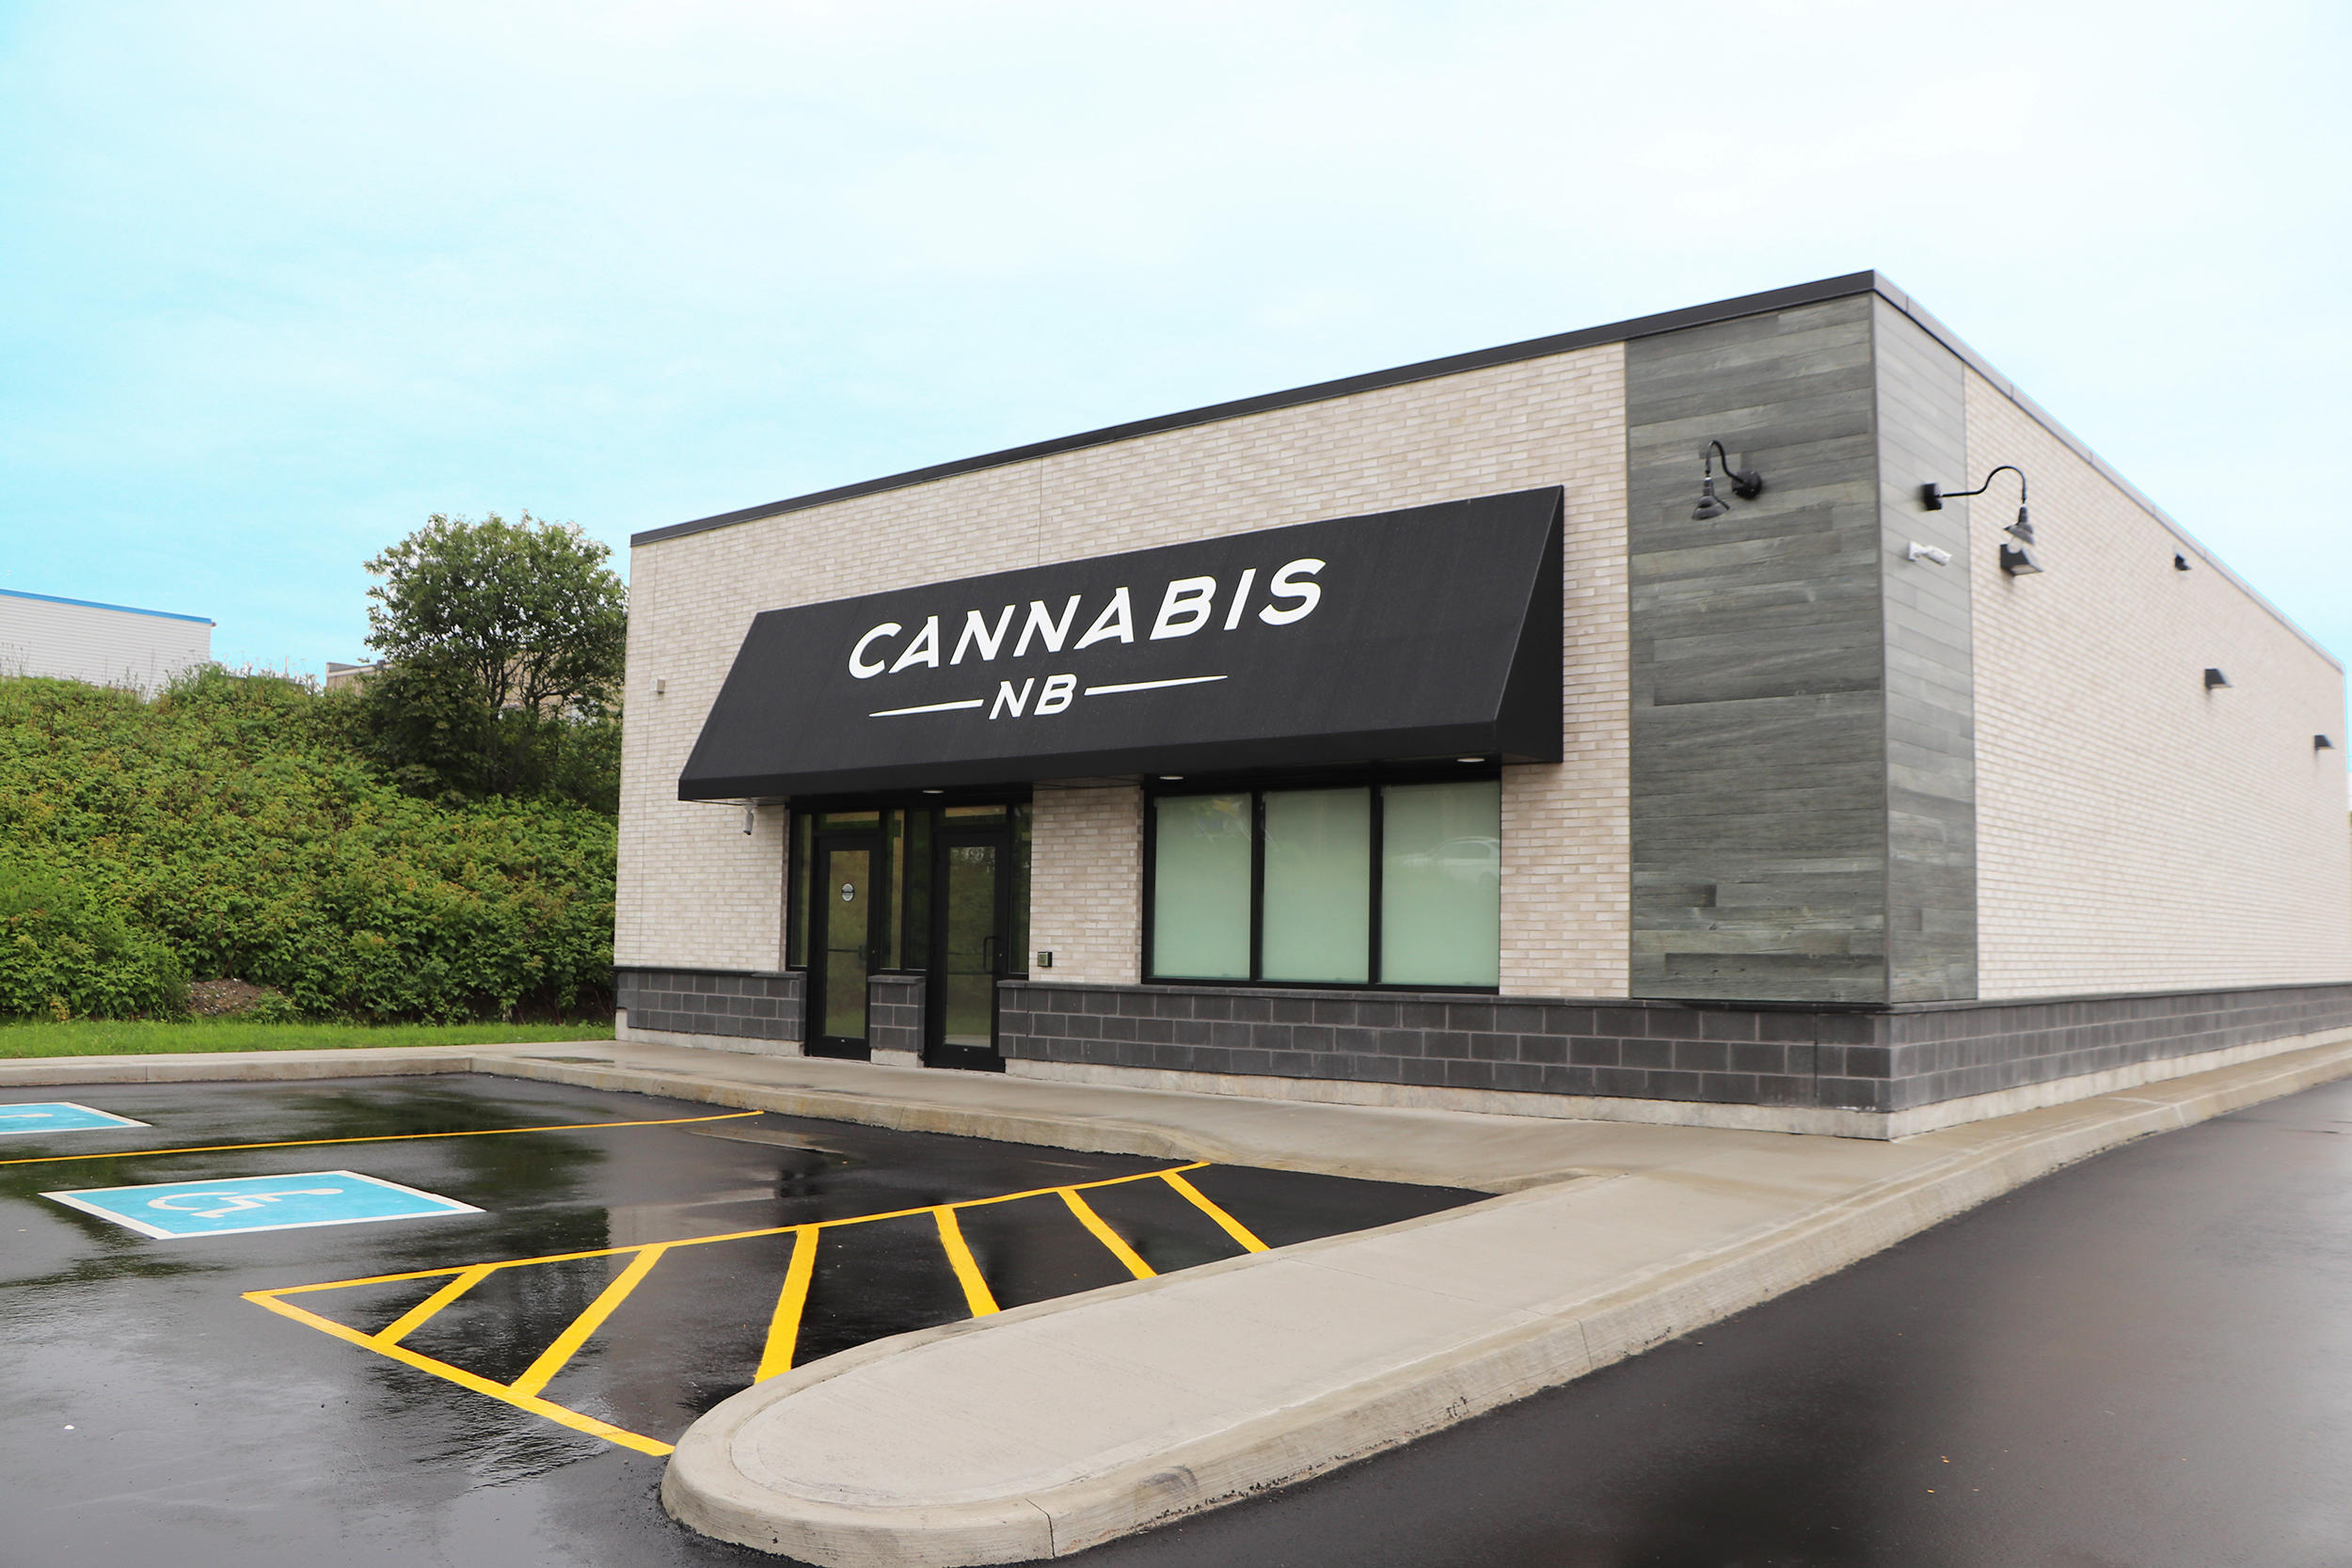 Cannabis NB à Moncton: Cannabis NB Saint John location on Lansdowne Ave